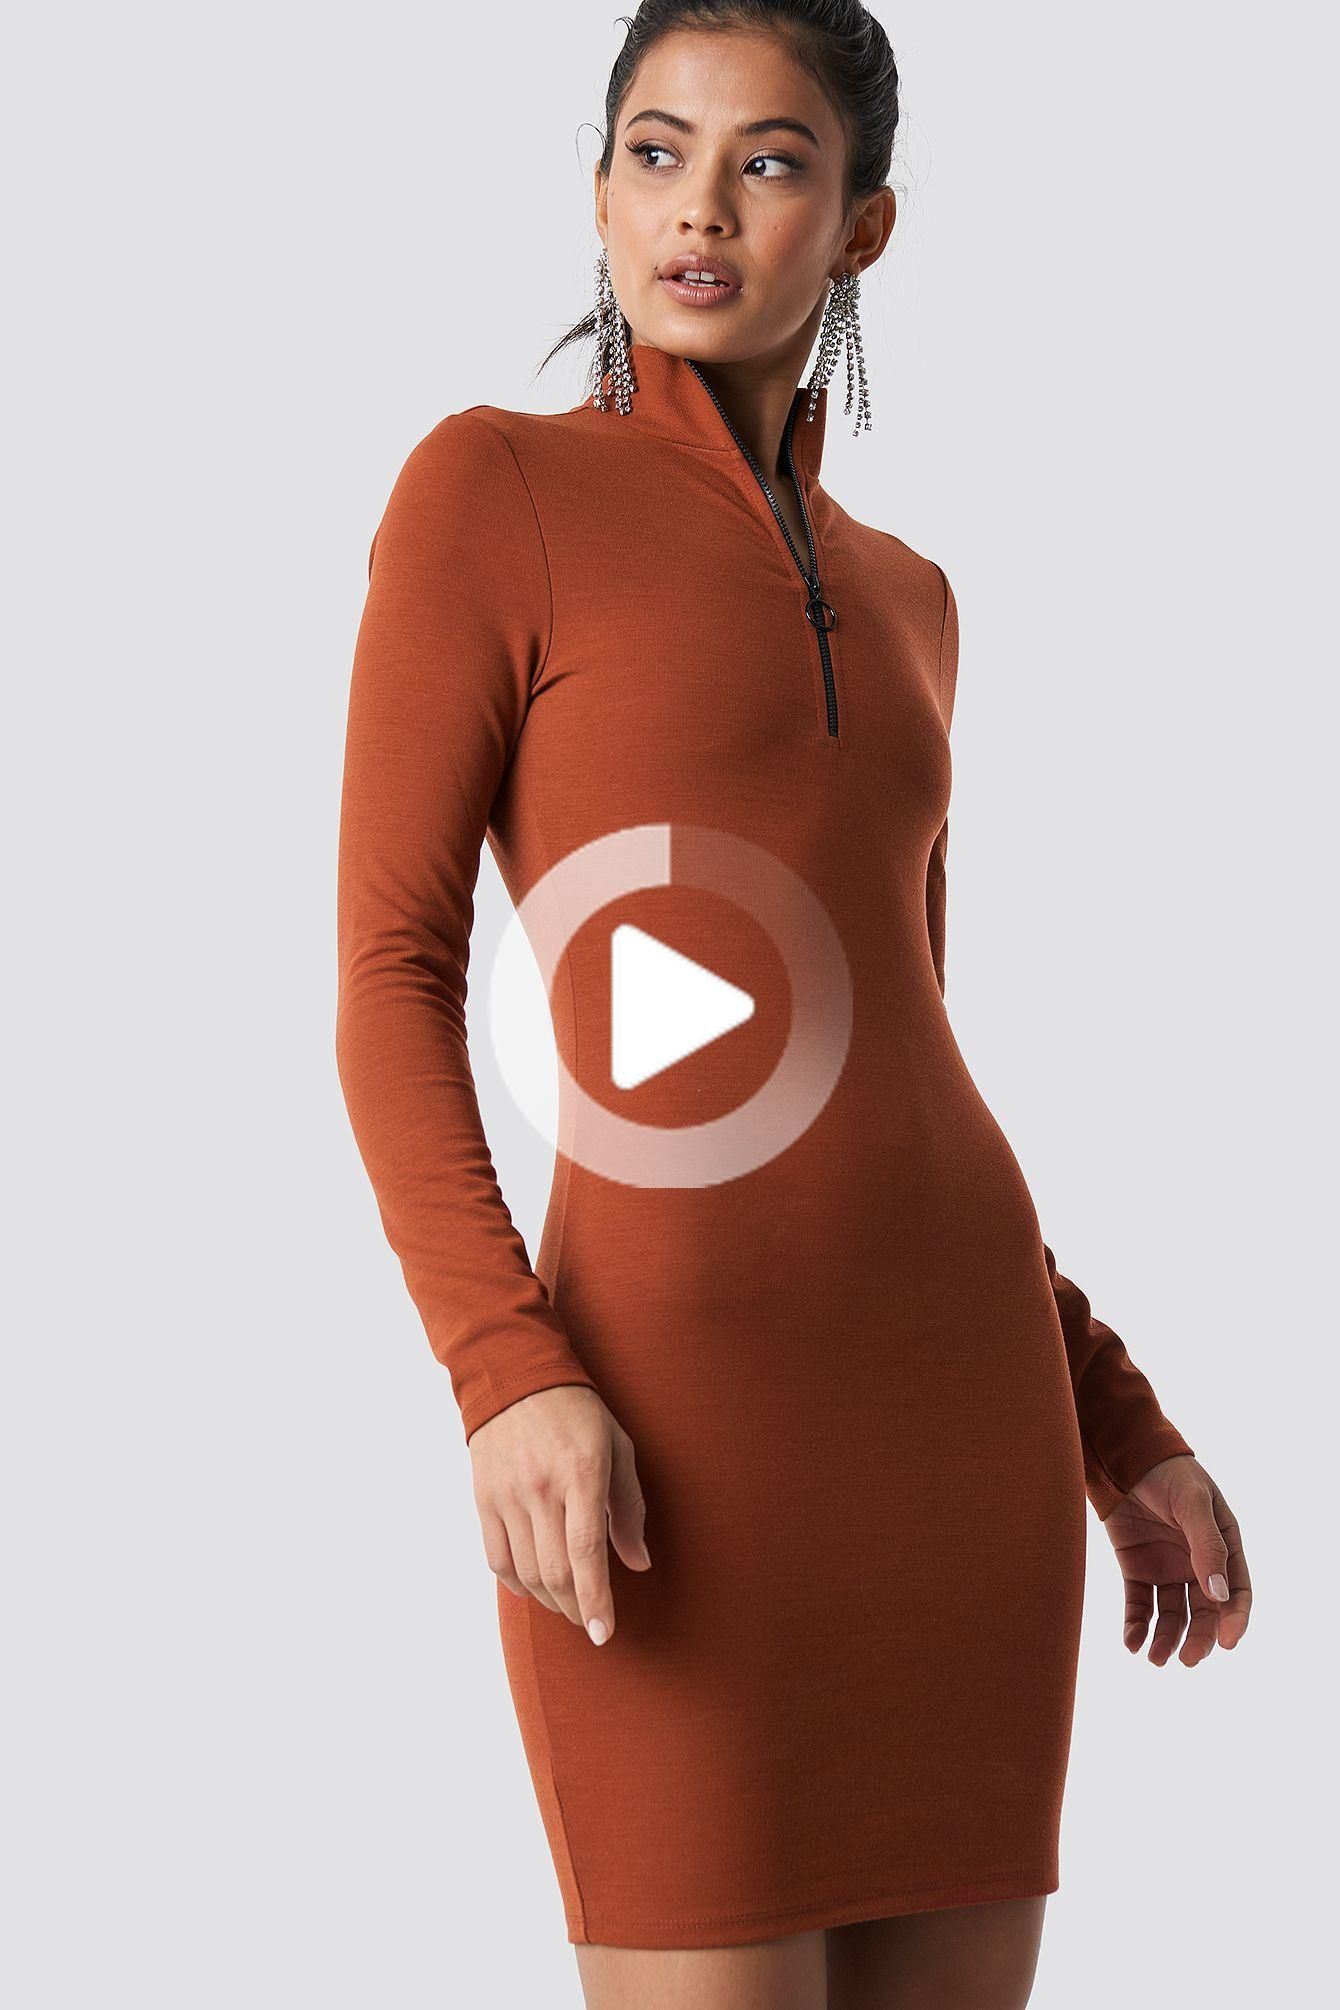 This dress by Hanna Friberg x NA-KD has a mini length, a turtleneck with a zipper detail and an elastic jersey material. #cuteoutfits